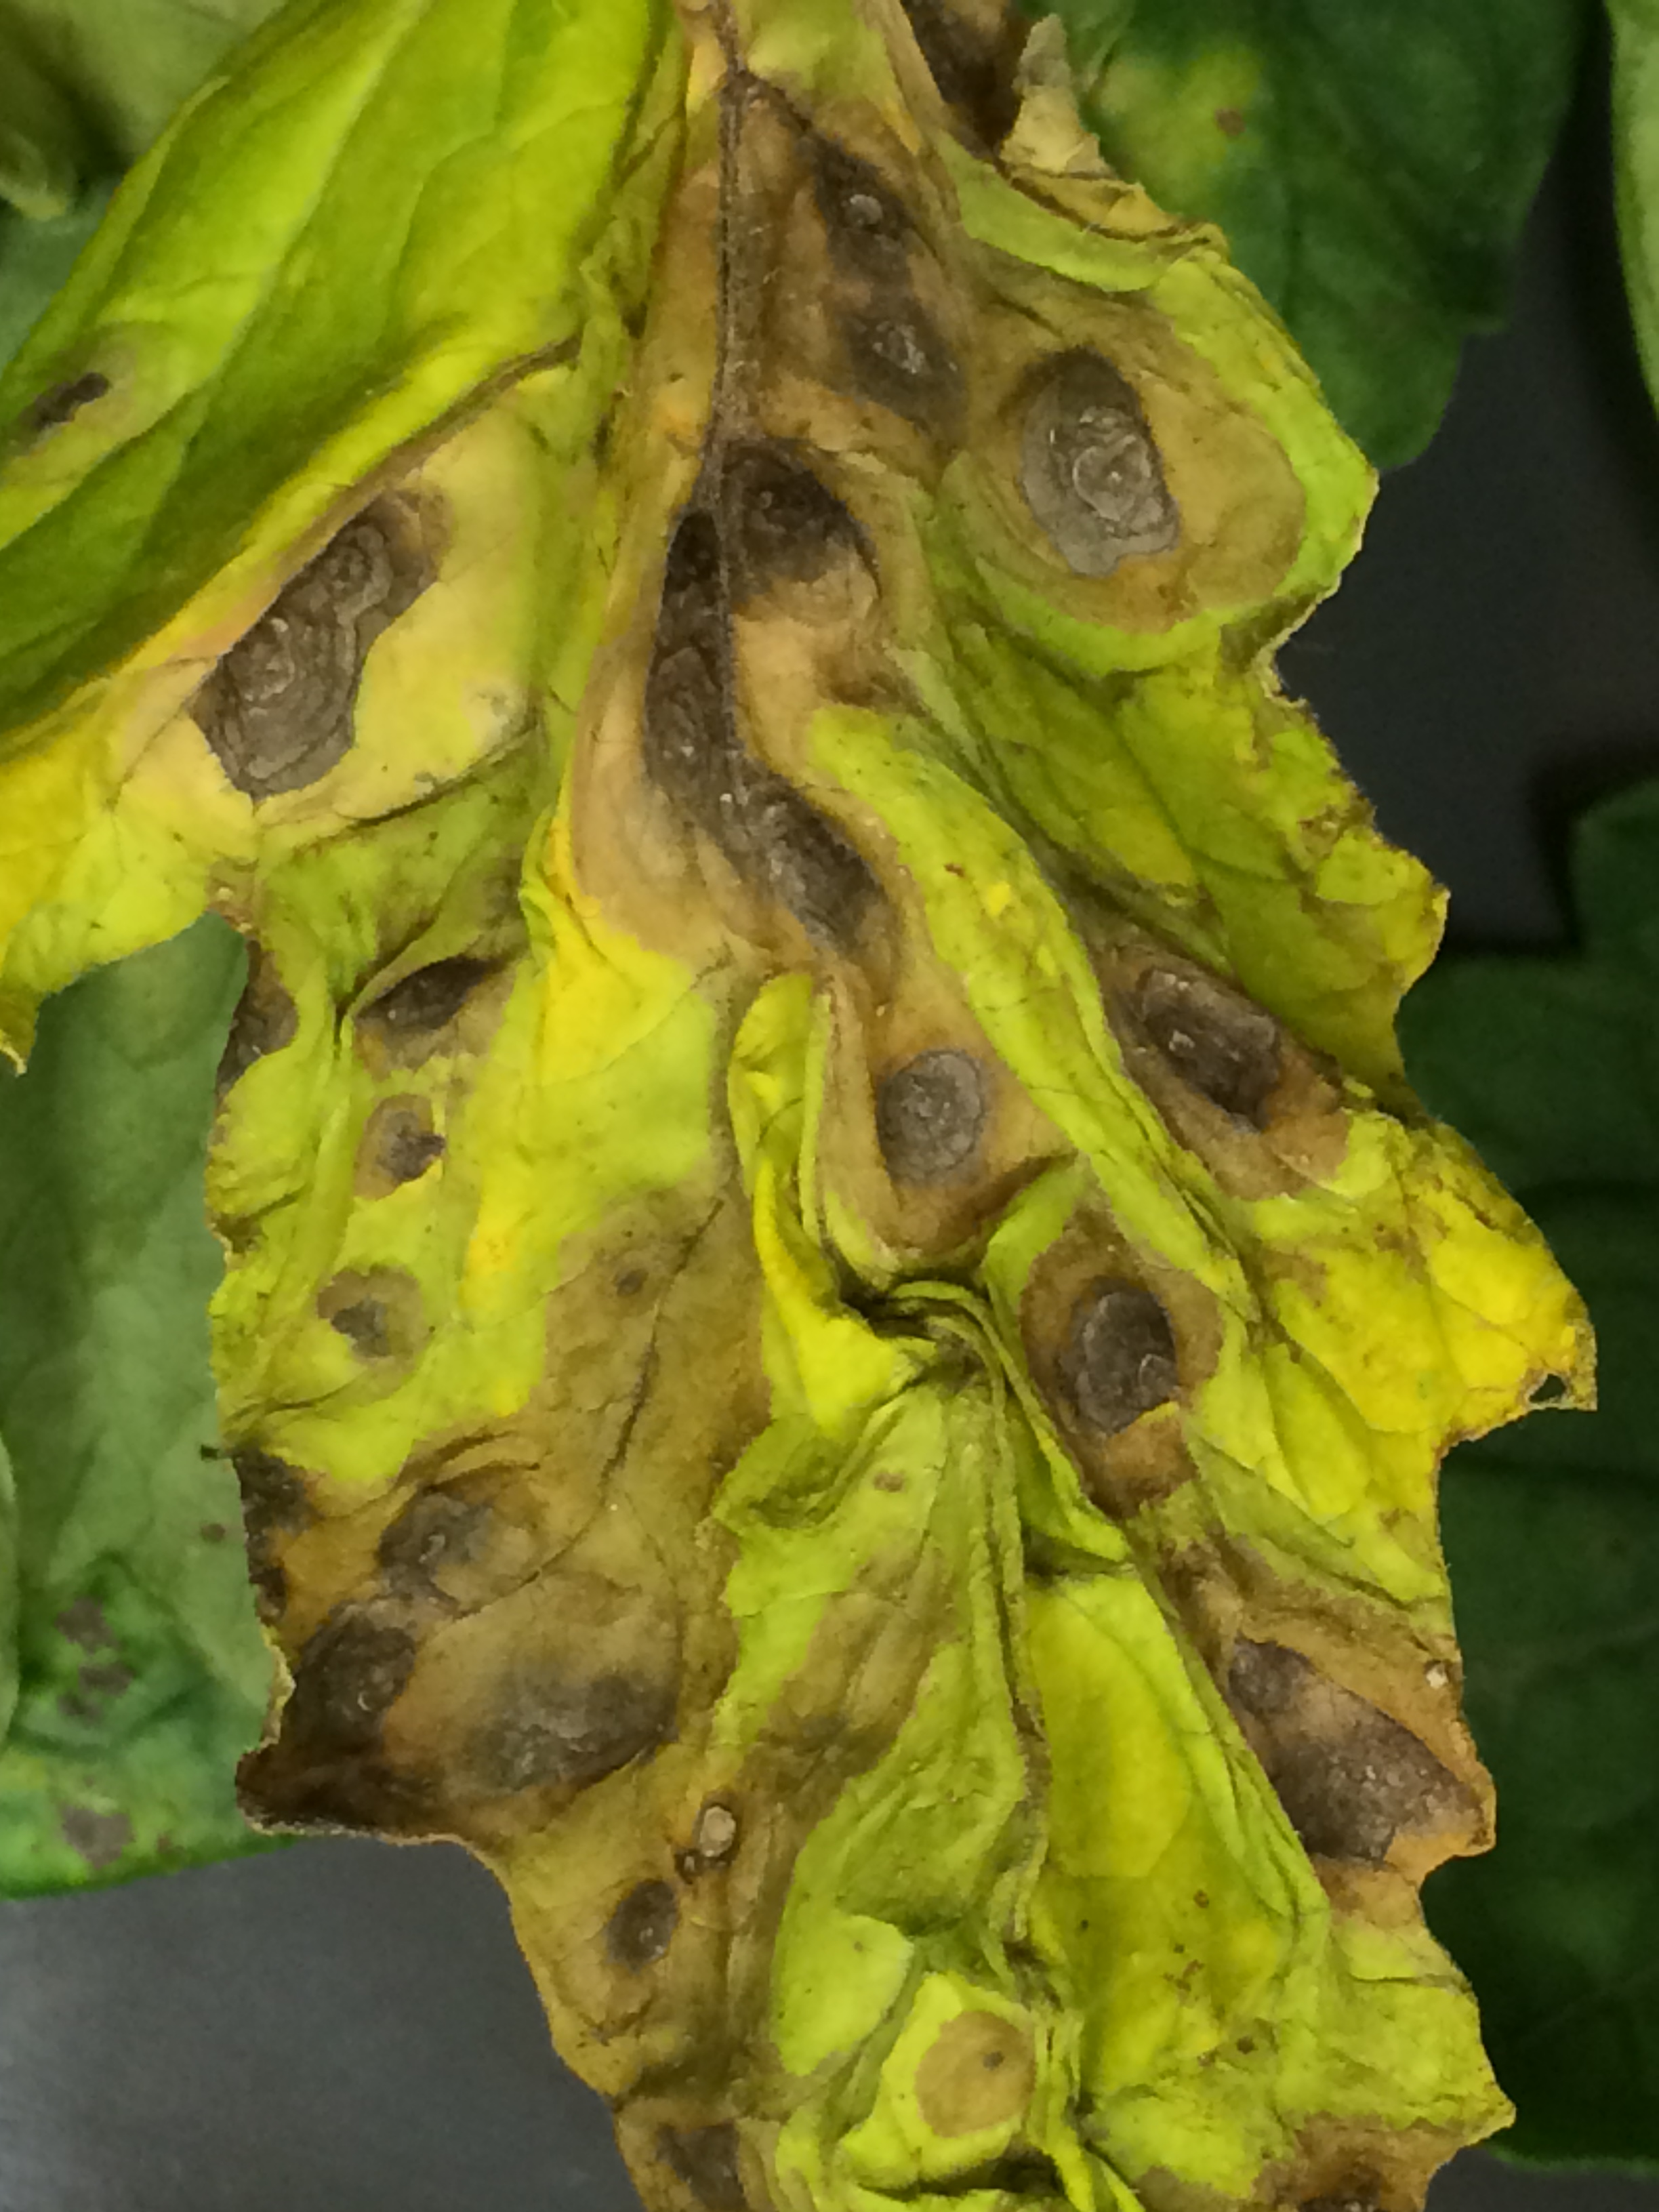 Symptoms of early blight on a tomato leaflet.